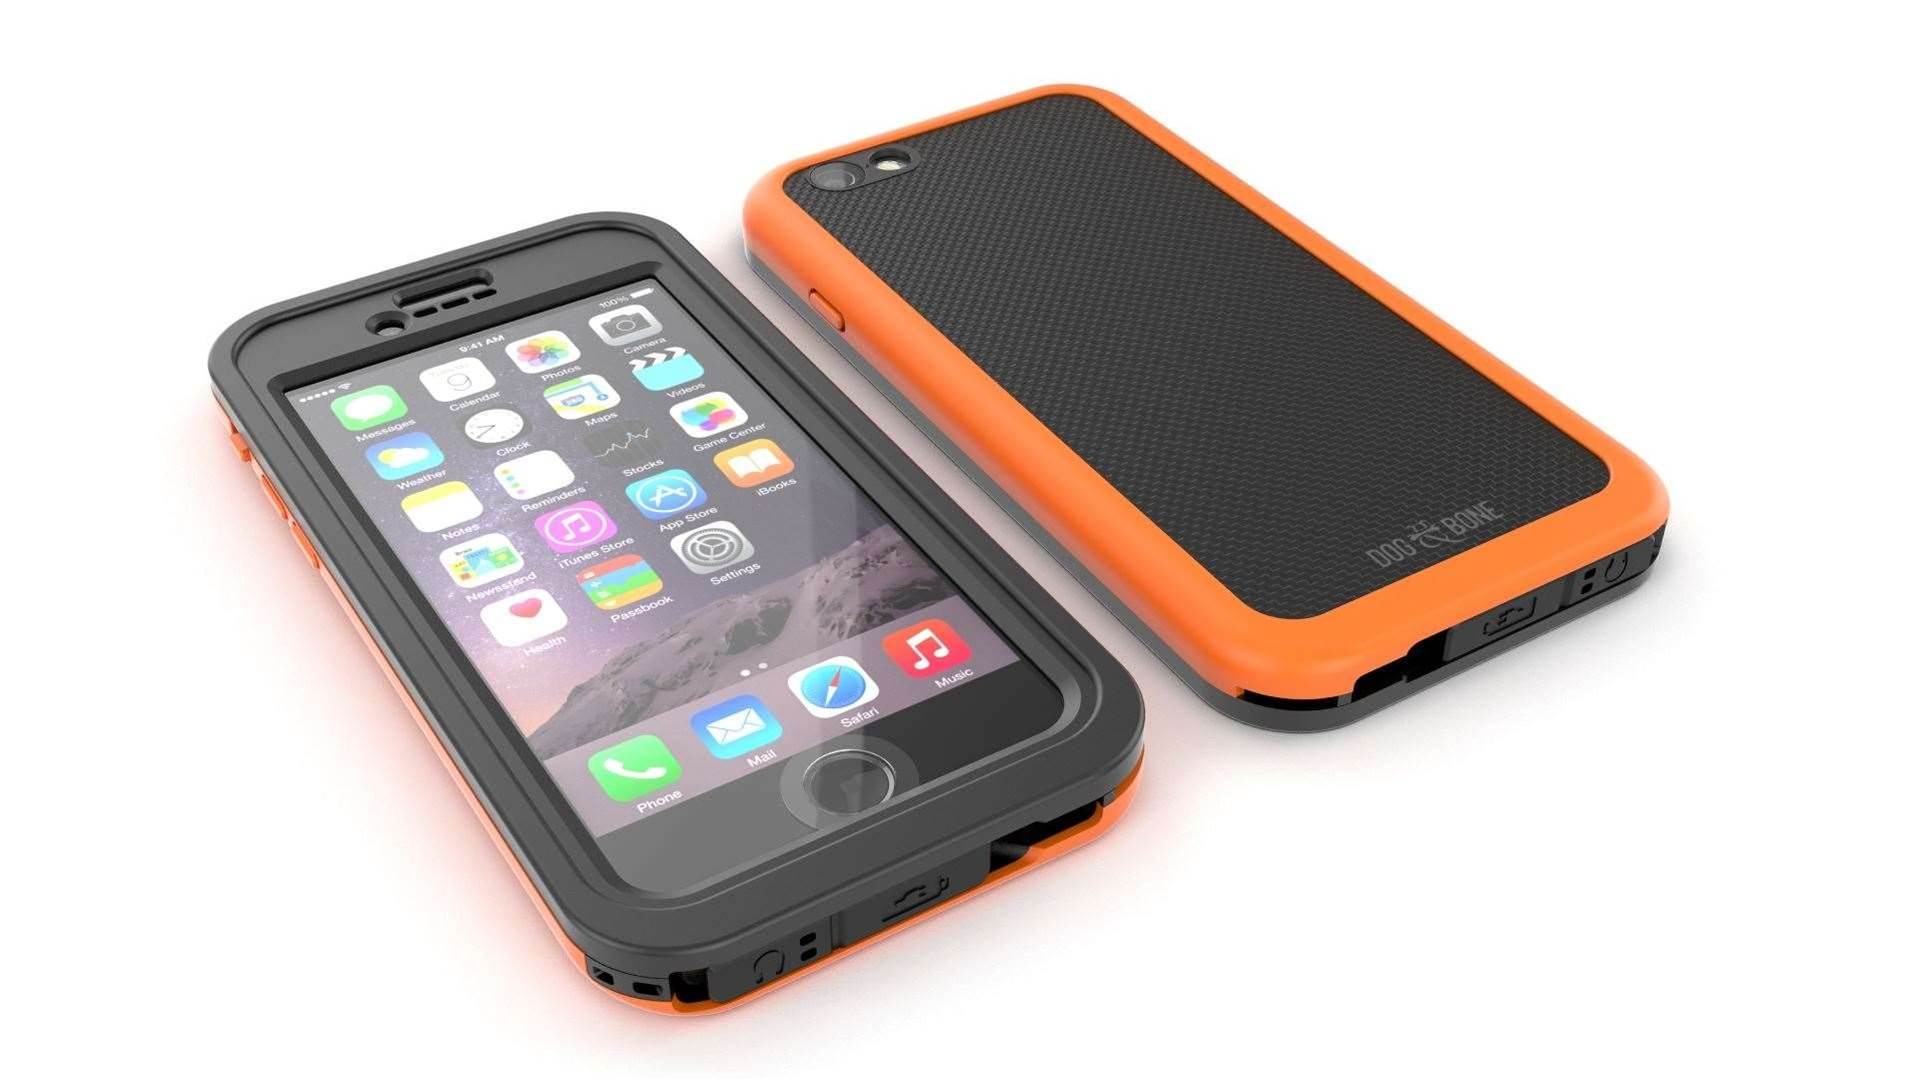 Gift Guide: The Wetsuit Impact phone case